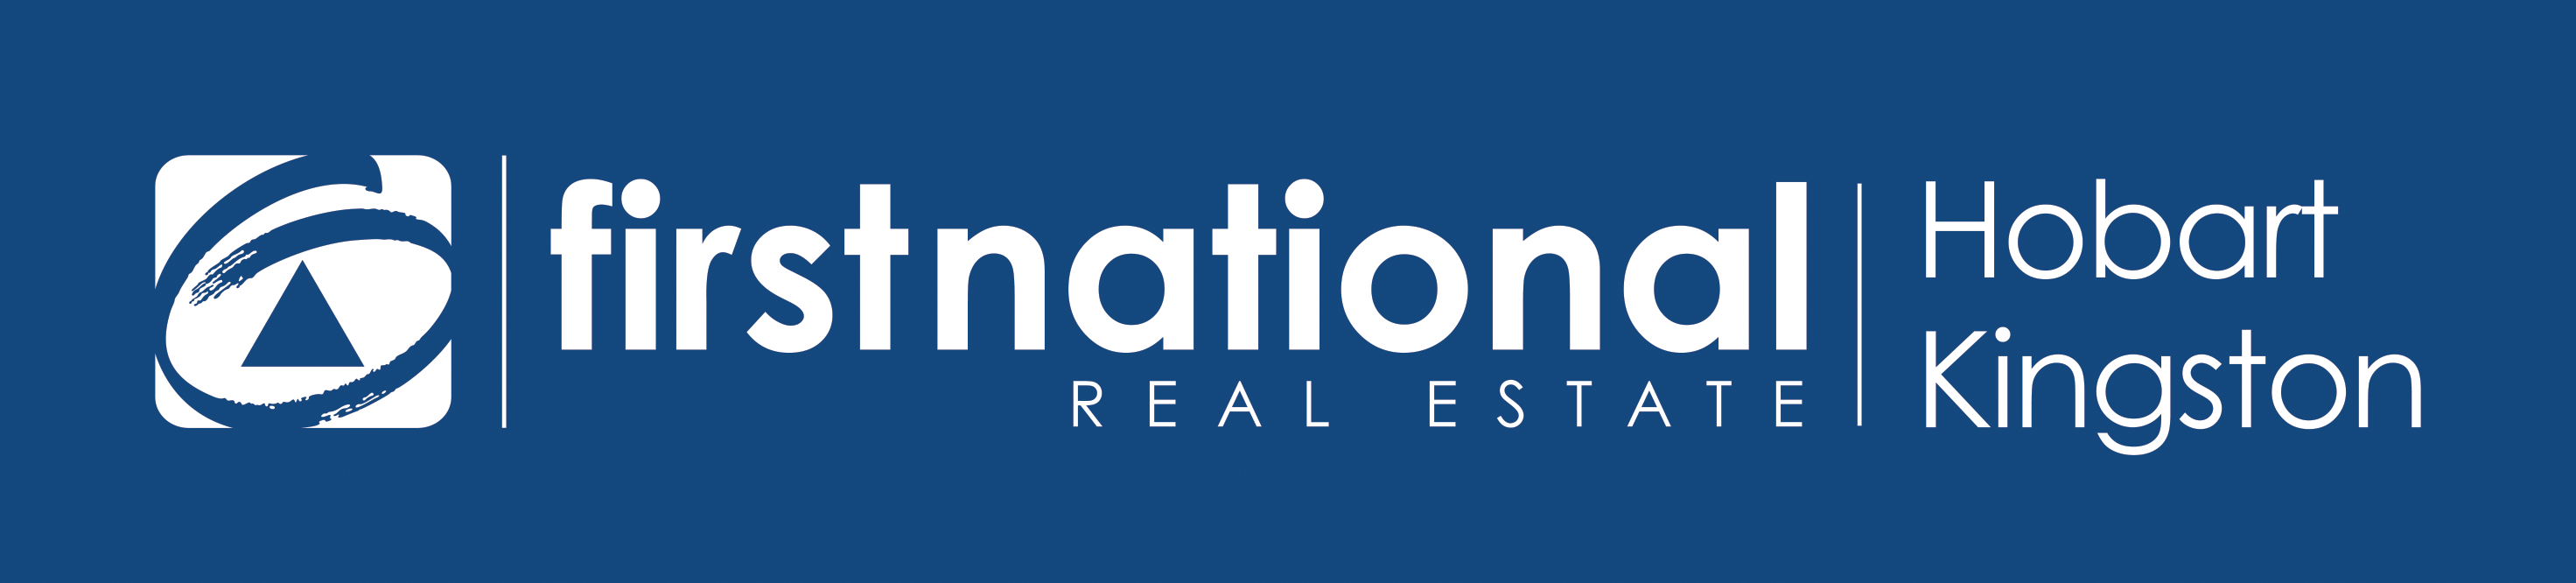 First National Real Estate Kingston / Hobart